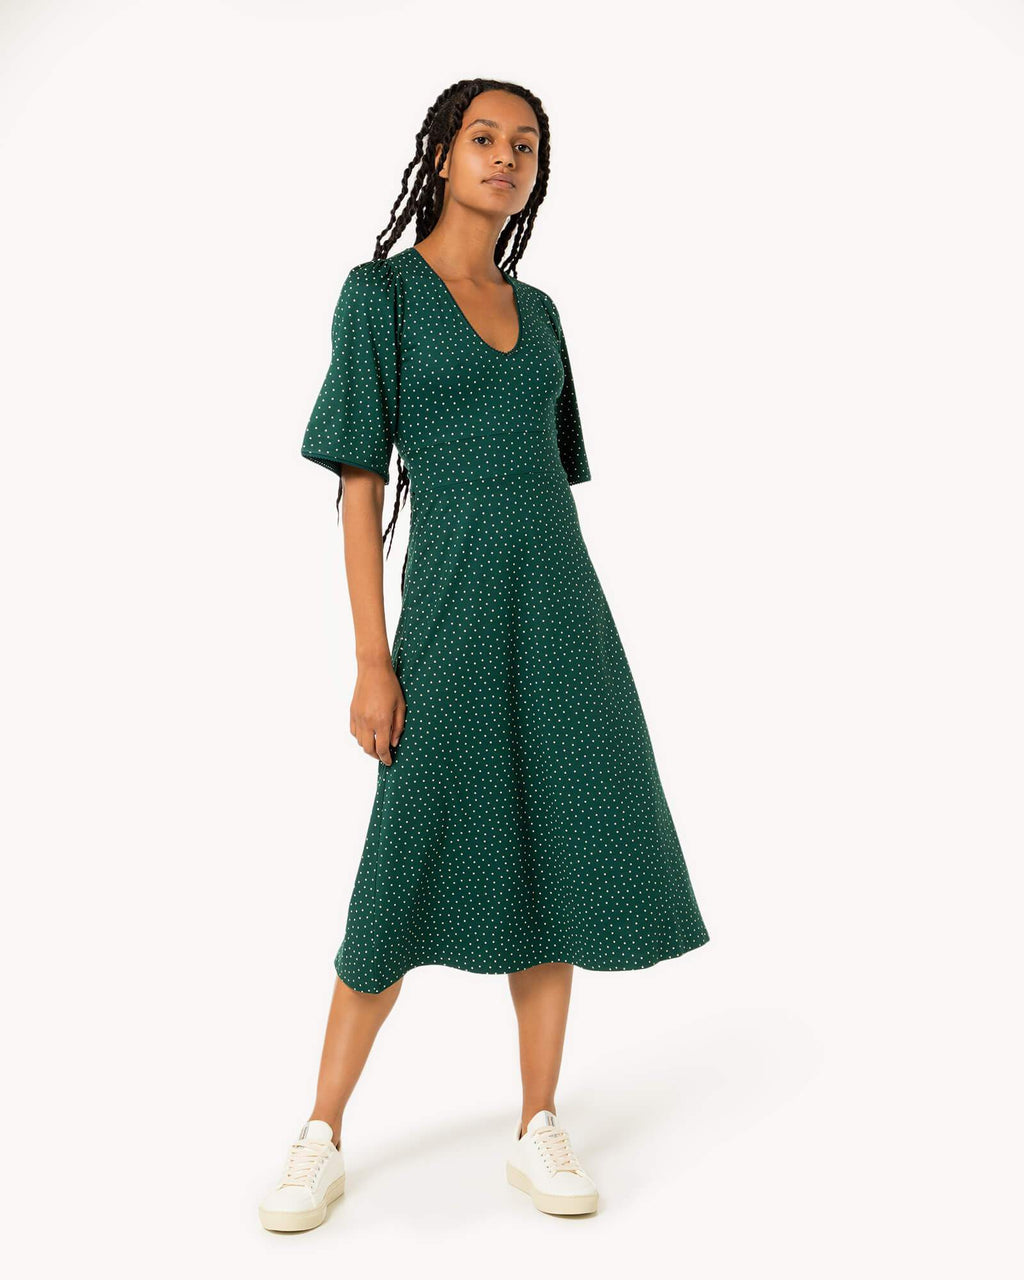 variant_1 | EN Green Dots Dress Women | DE Grünes Kleid Gepunktet Damen